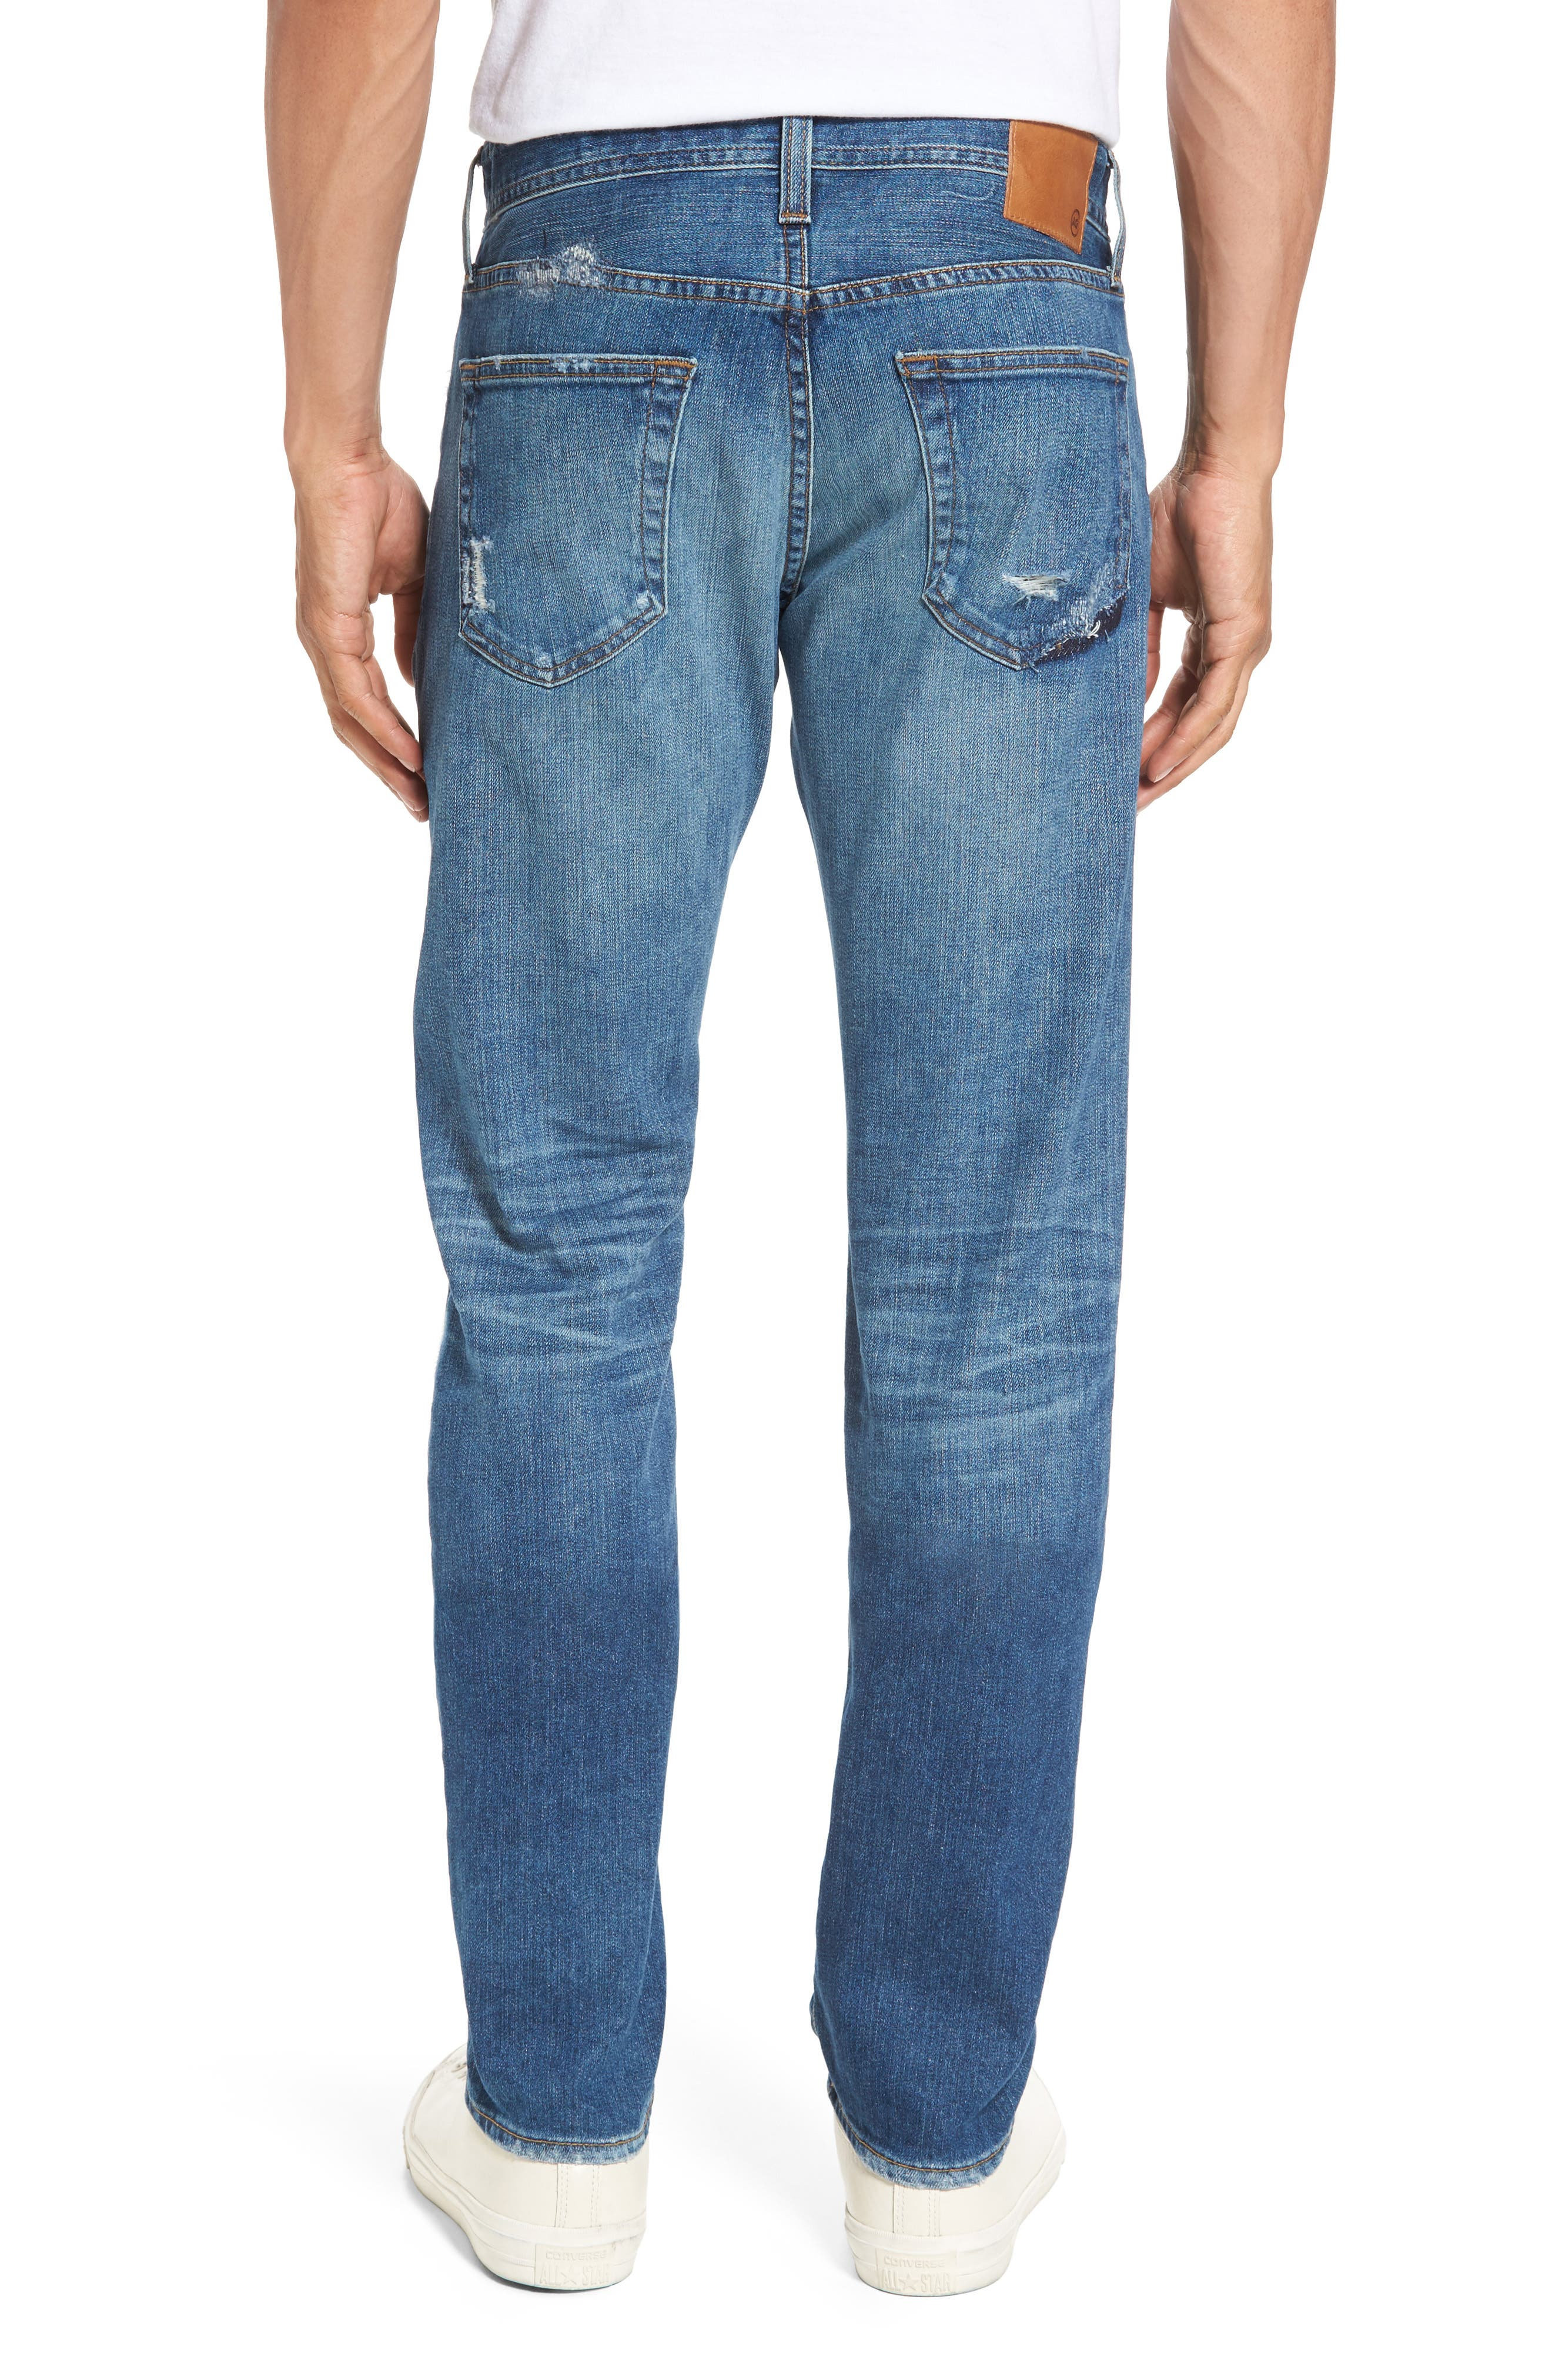 Tellis Slim FIt Jeans,                             Alternate thumbnail 2, color,                             16 Years Rave Mended